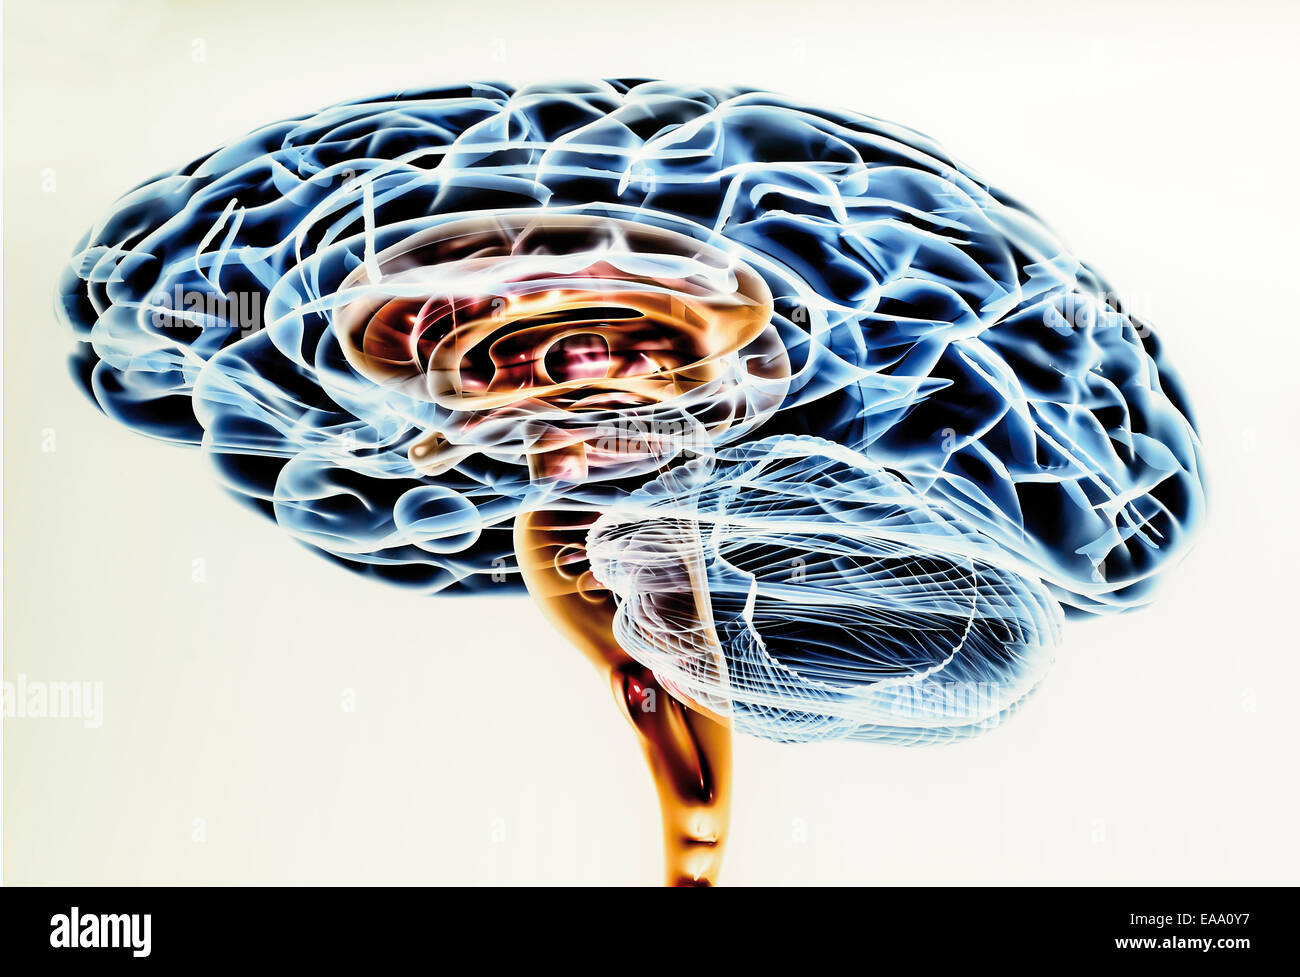 Spain, Burgos: Scientific drawing of the human brain in the Museum of Human Evolution - Stock Image